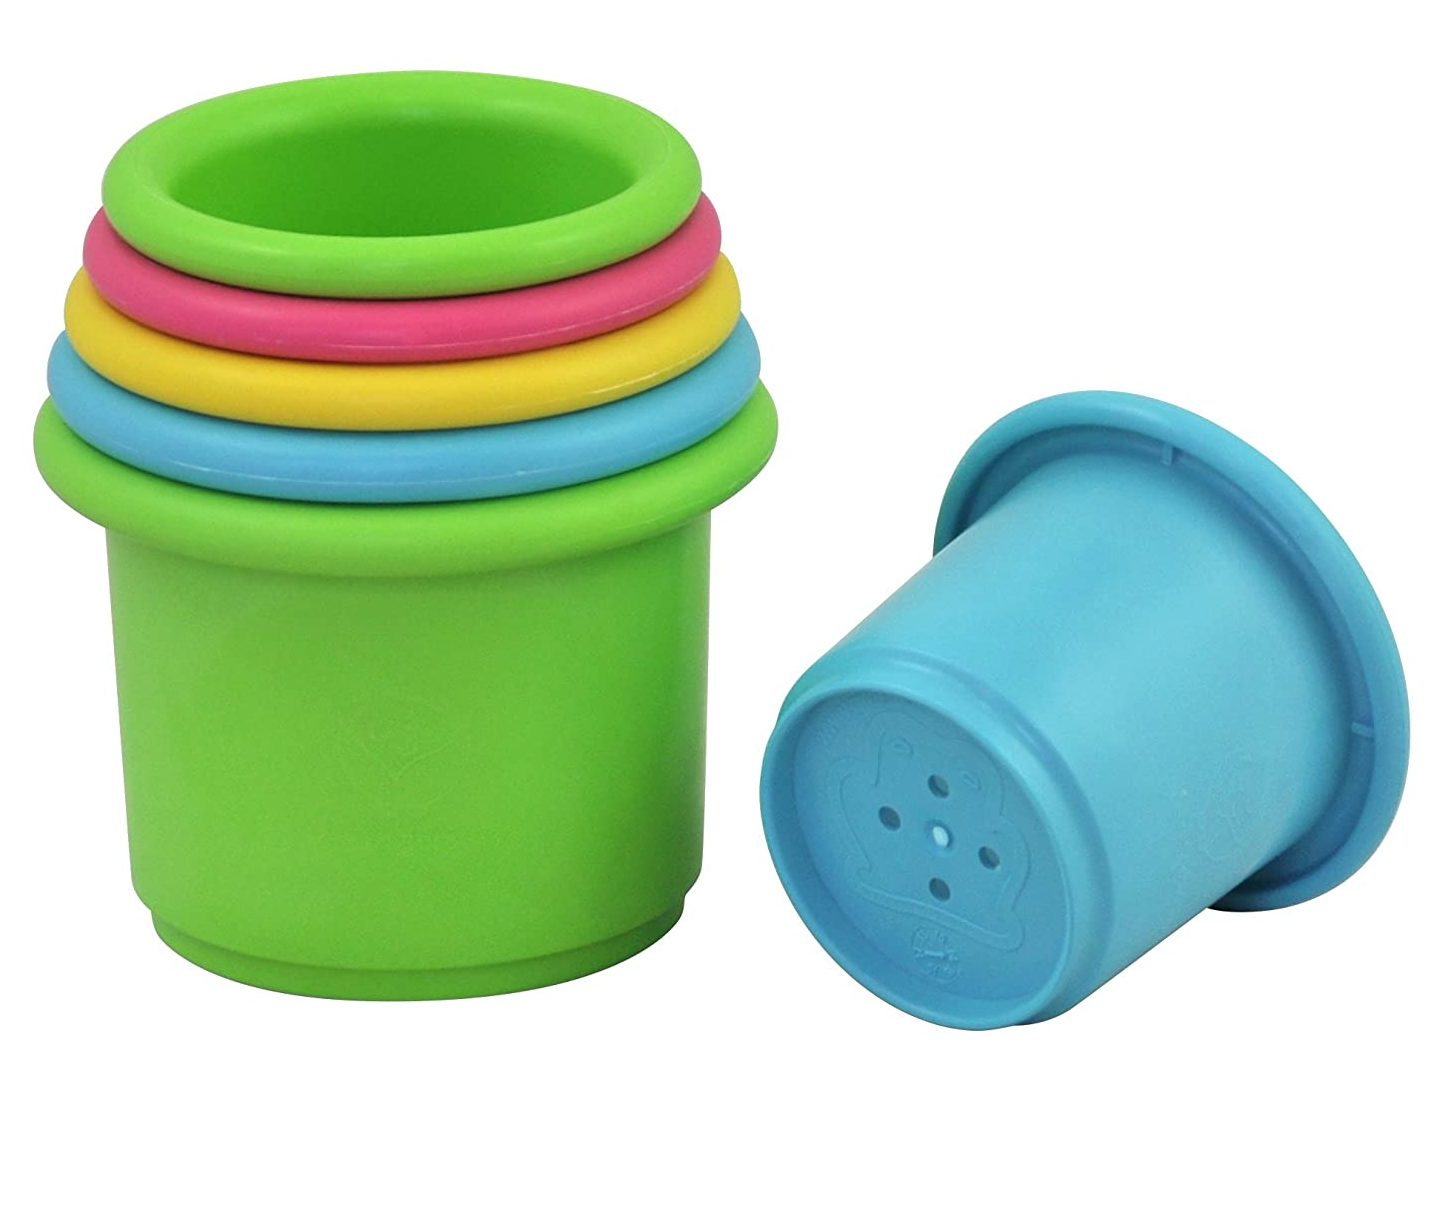 stocking-stuffer-ideas-for-kids-stacking-cups